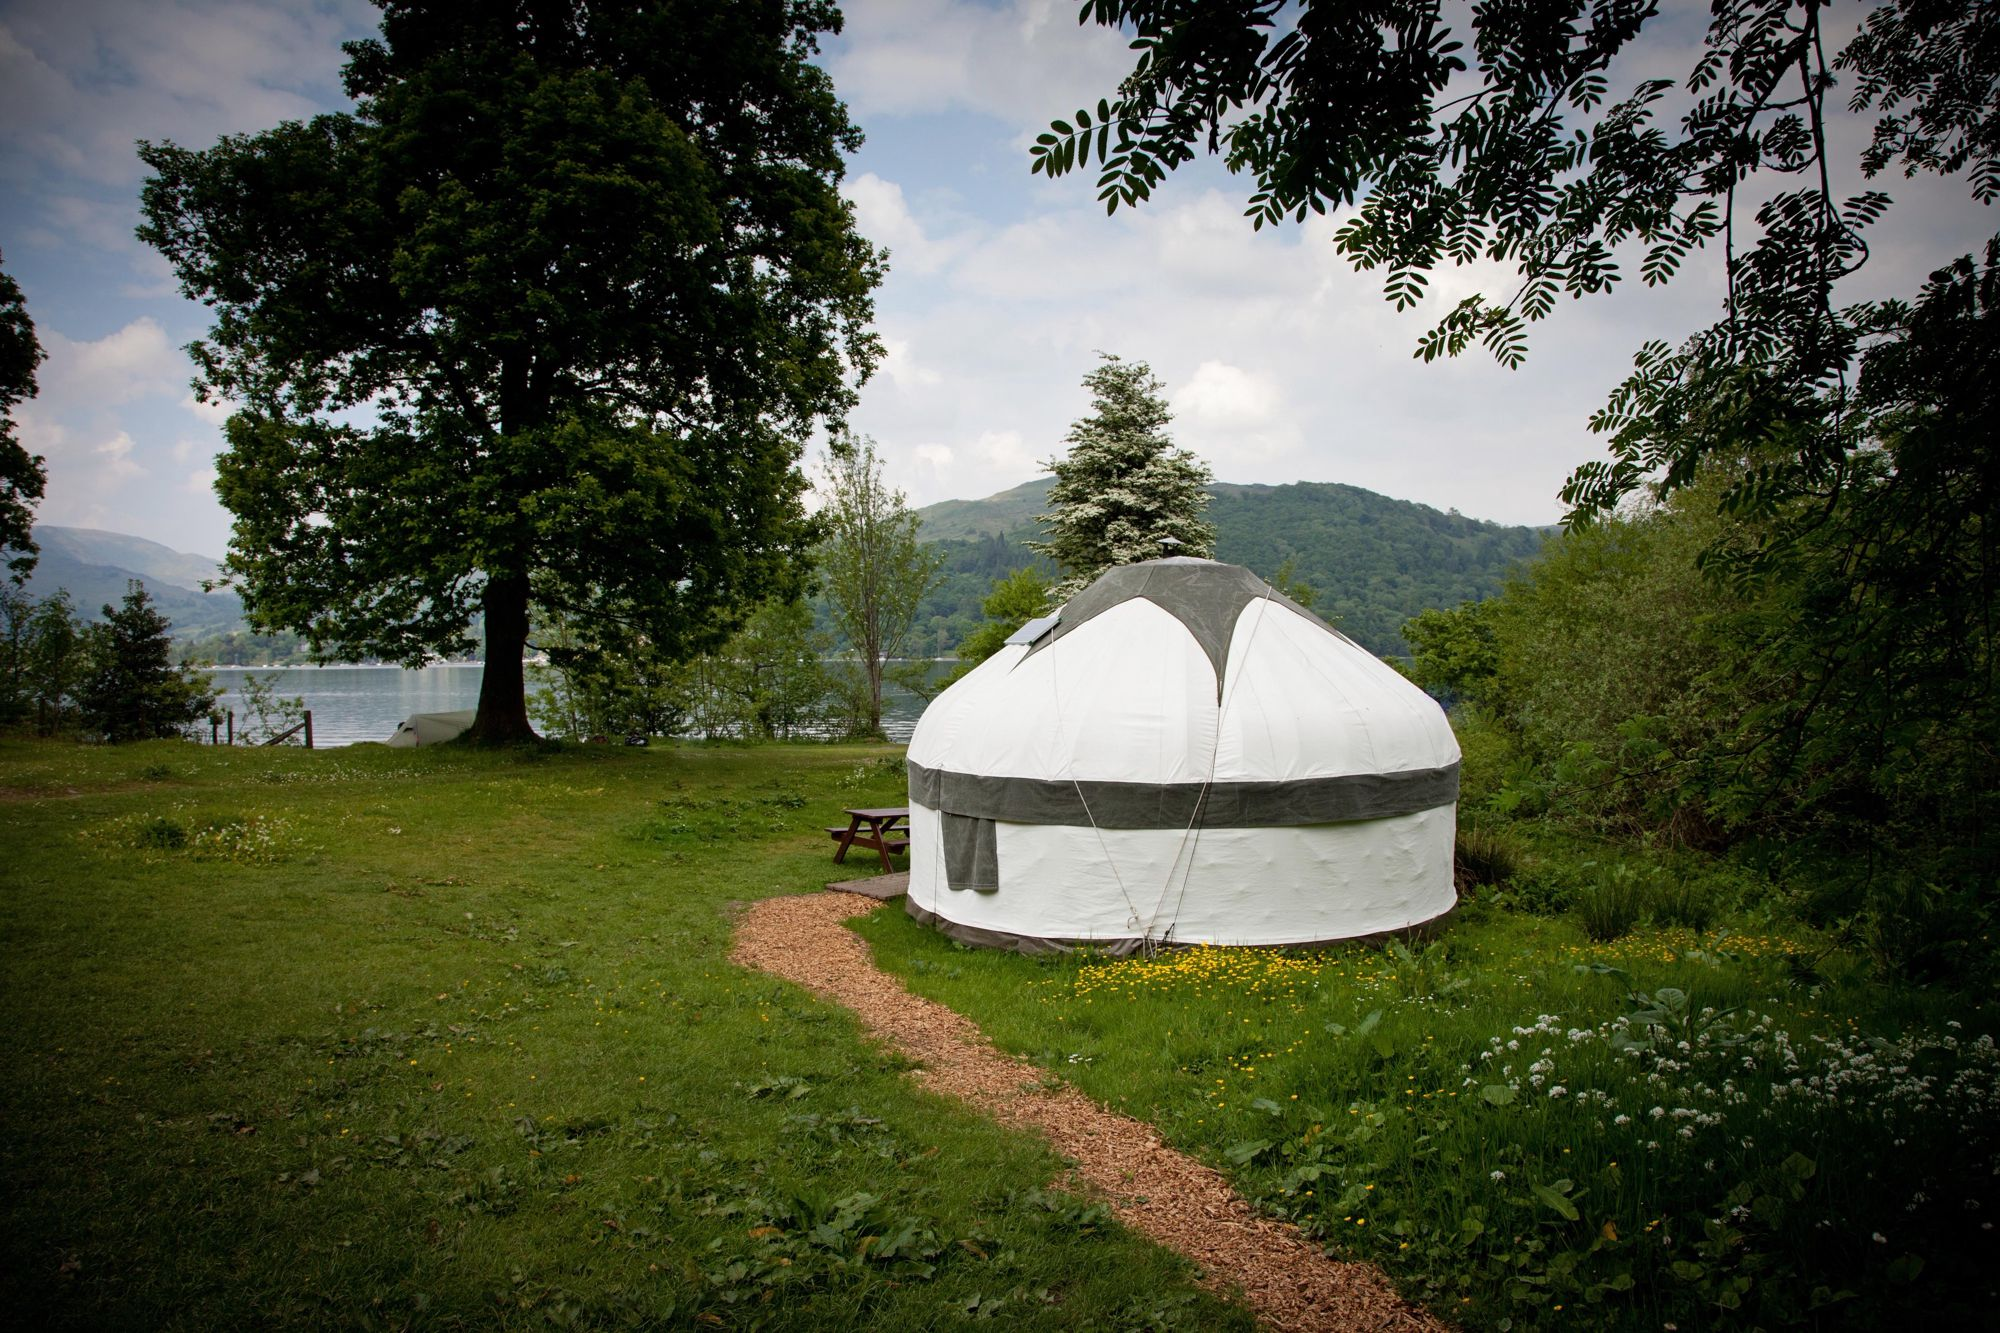 Glamping in the mountains